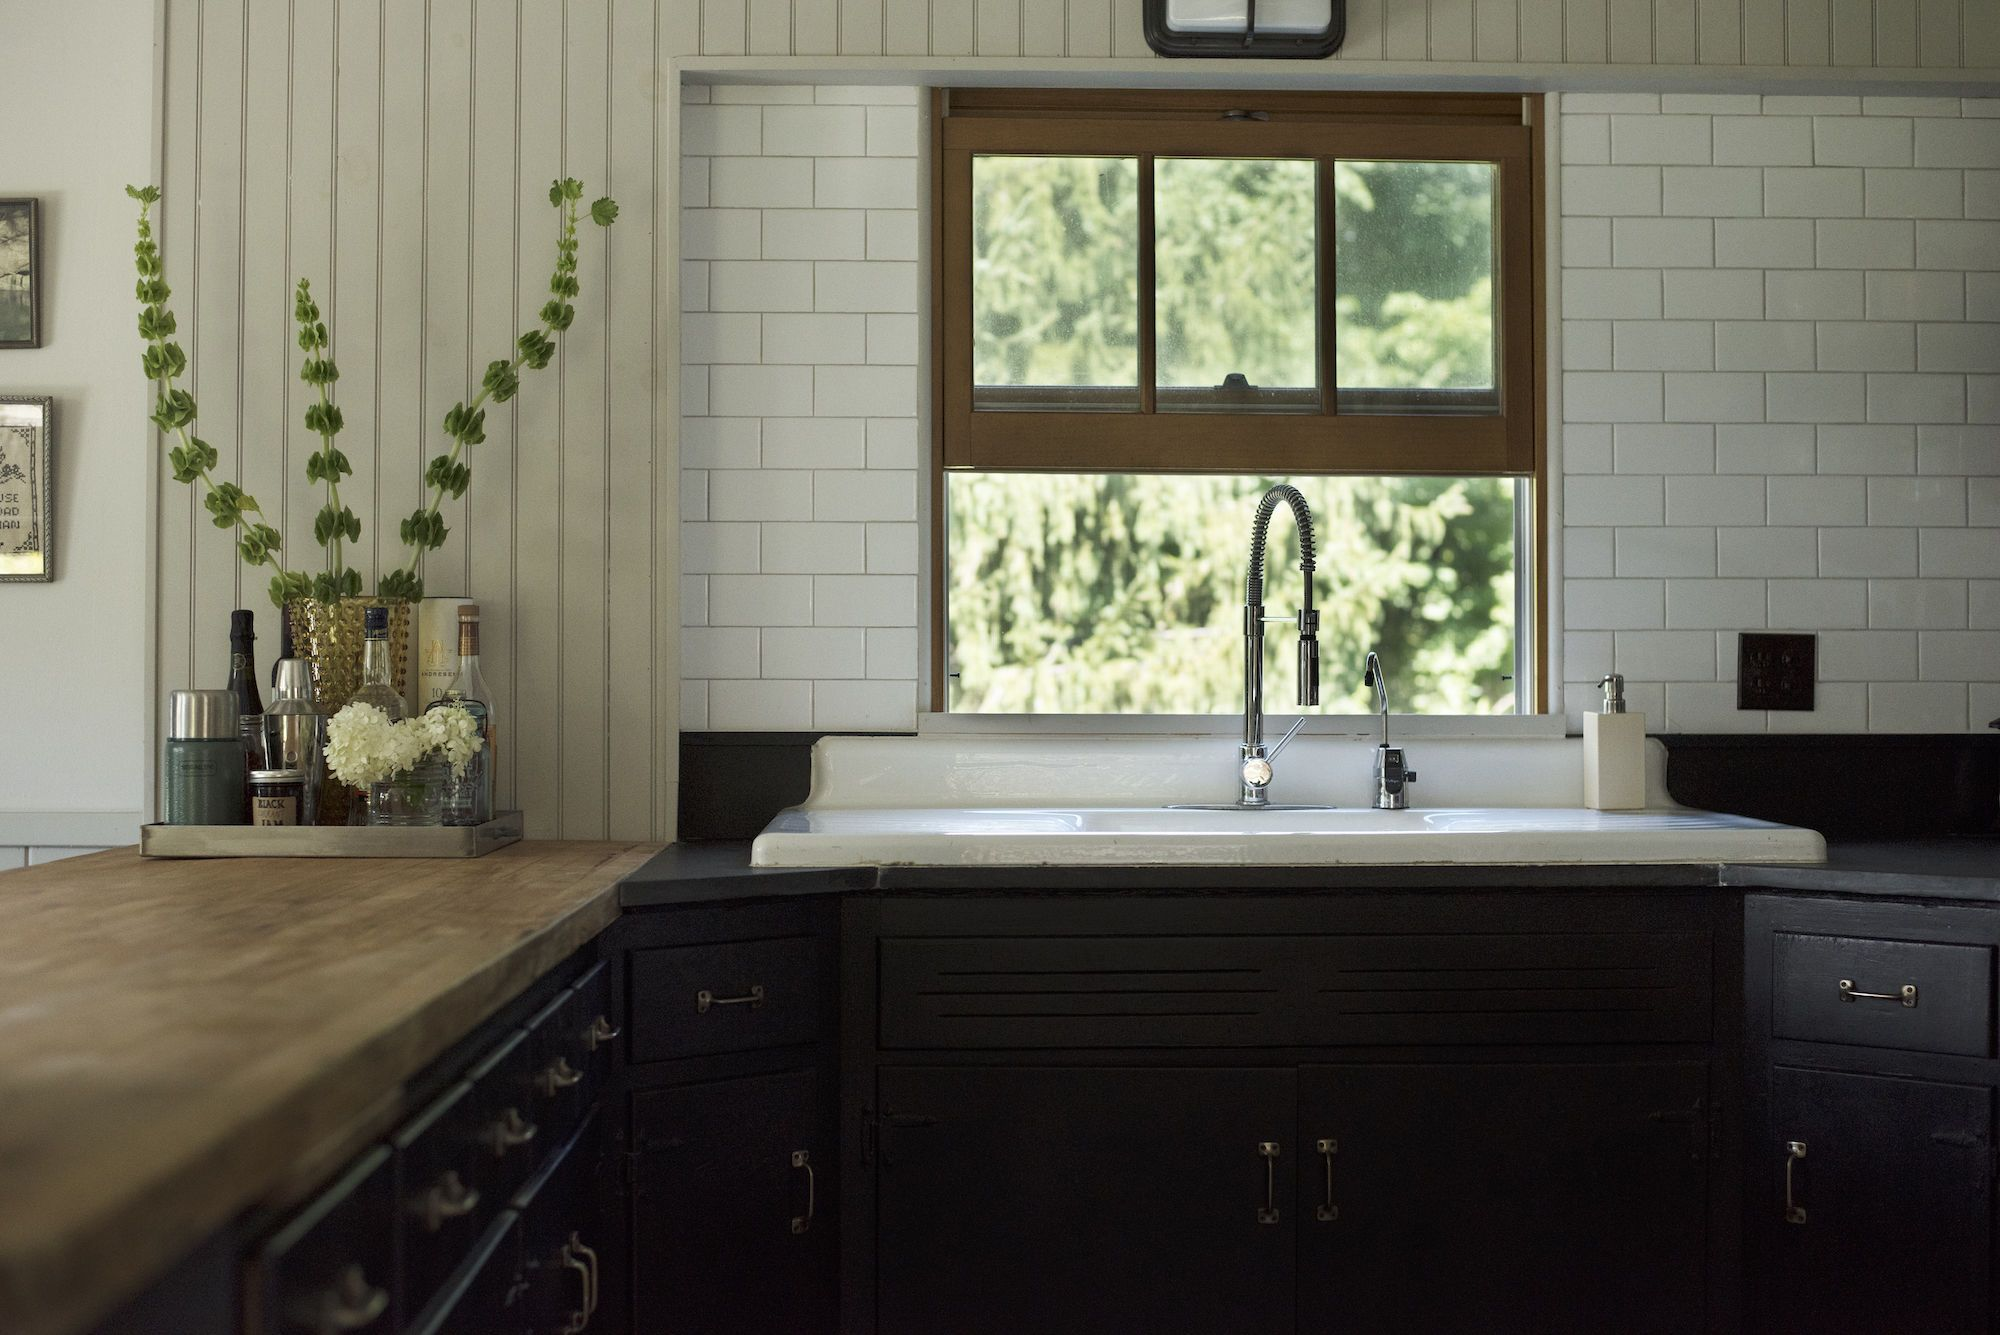 Architect visit an antiquarian farmhouse in upstate new york